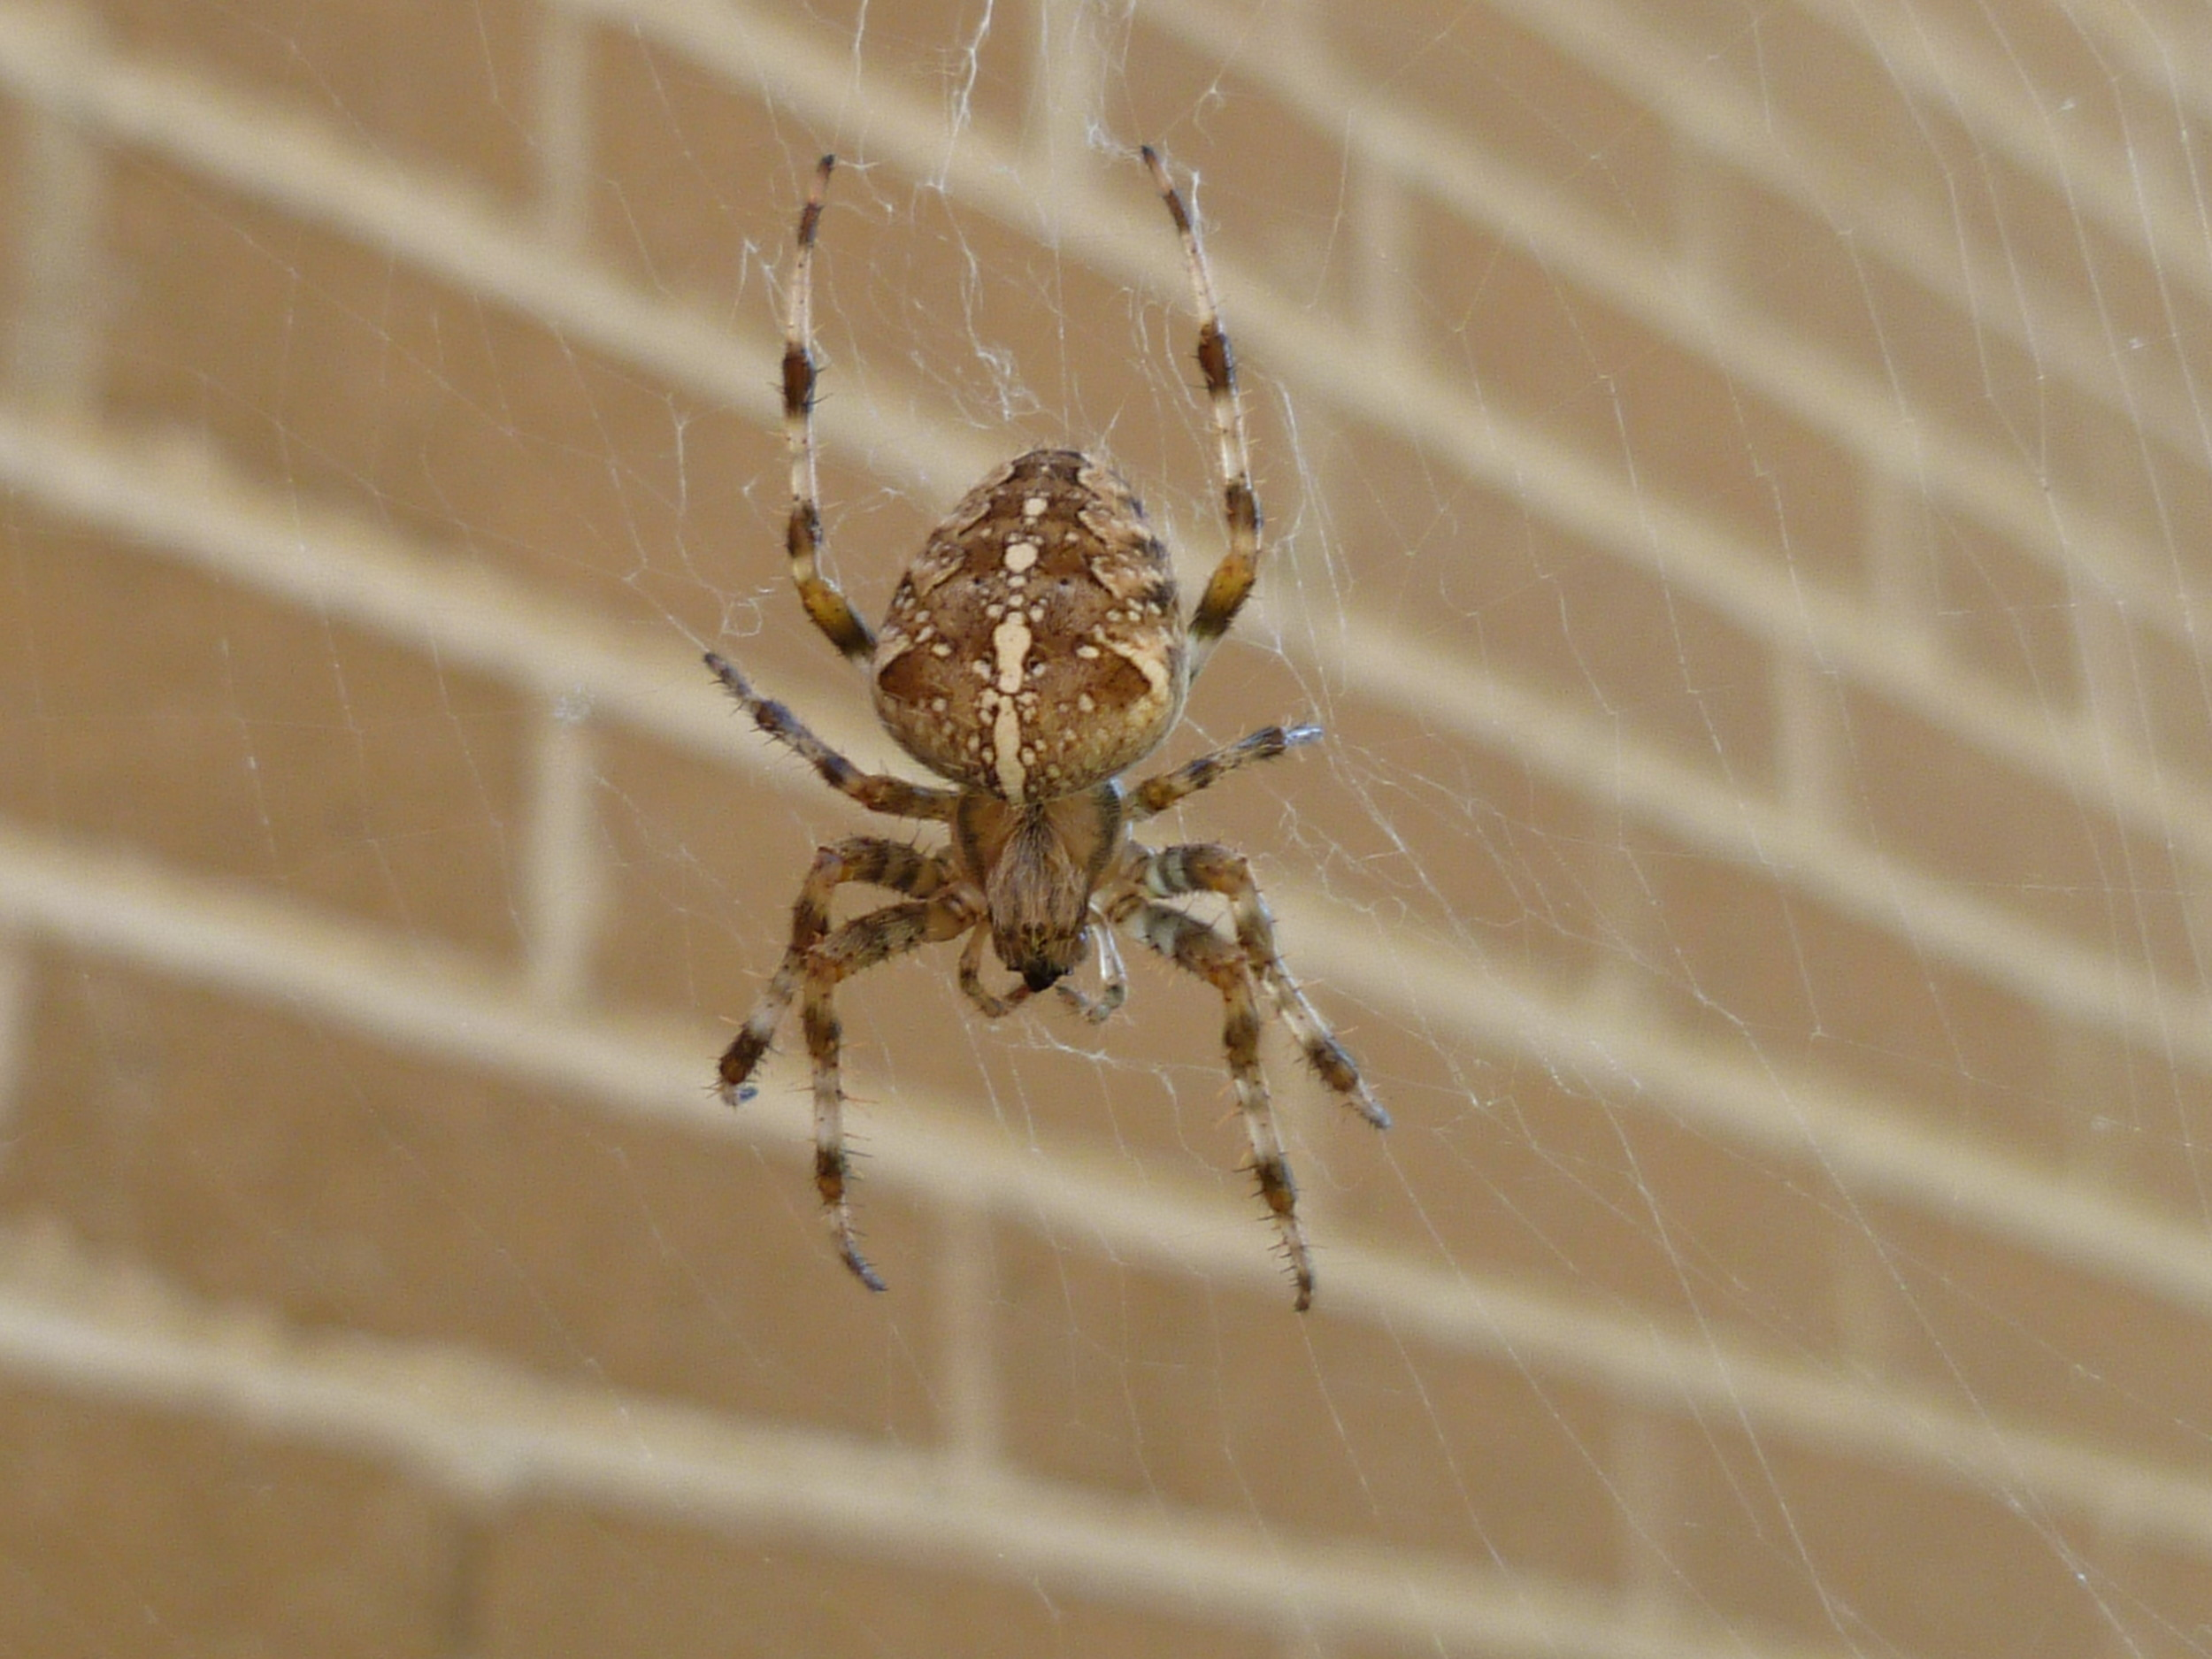 Araneus diadematus – The Cross Spider